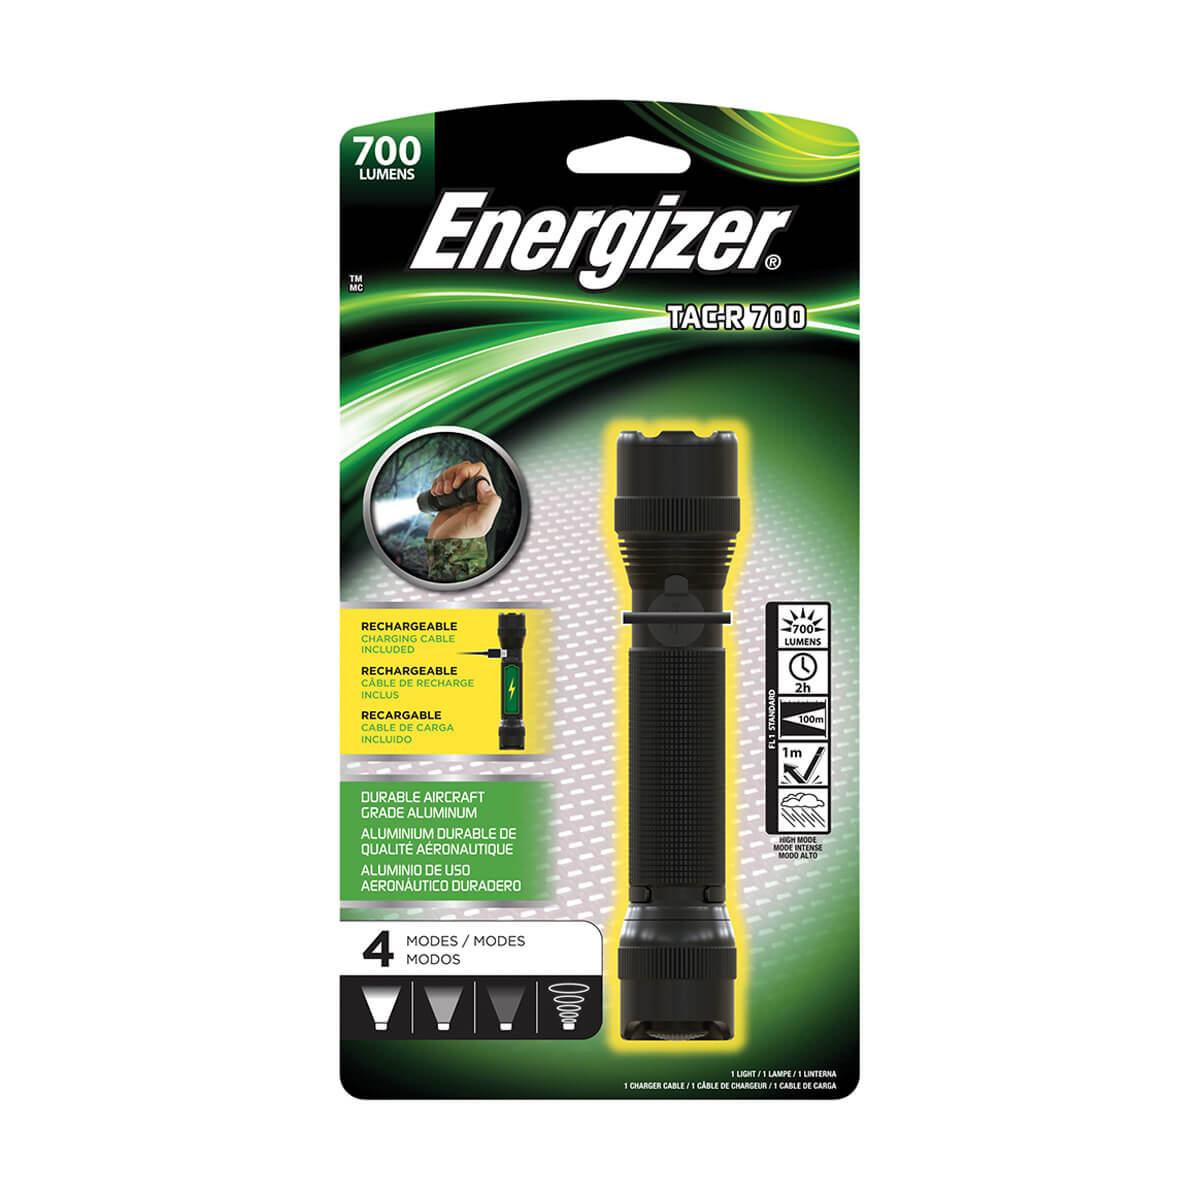 Energizer Rechargeable 700 Lumen Tac Light